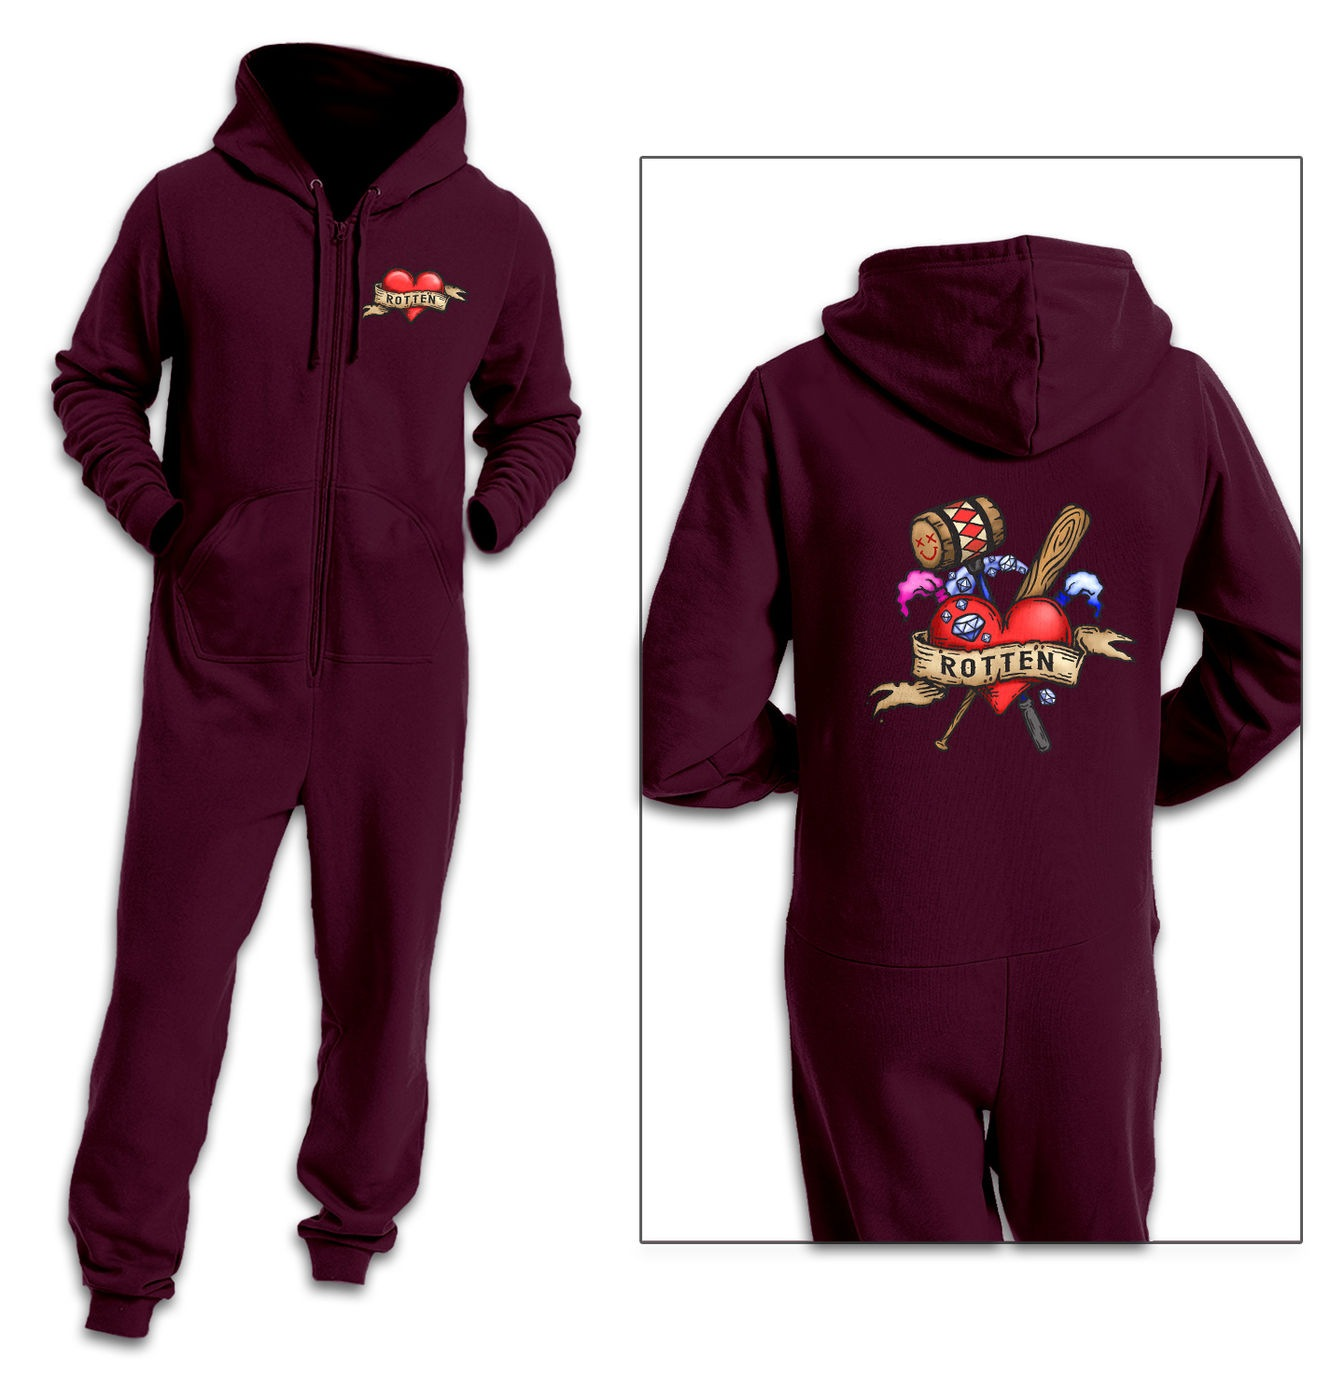 Rotten Tattoo adult onesie by Something Geeky